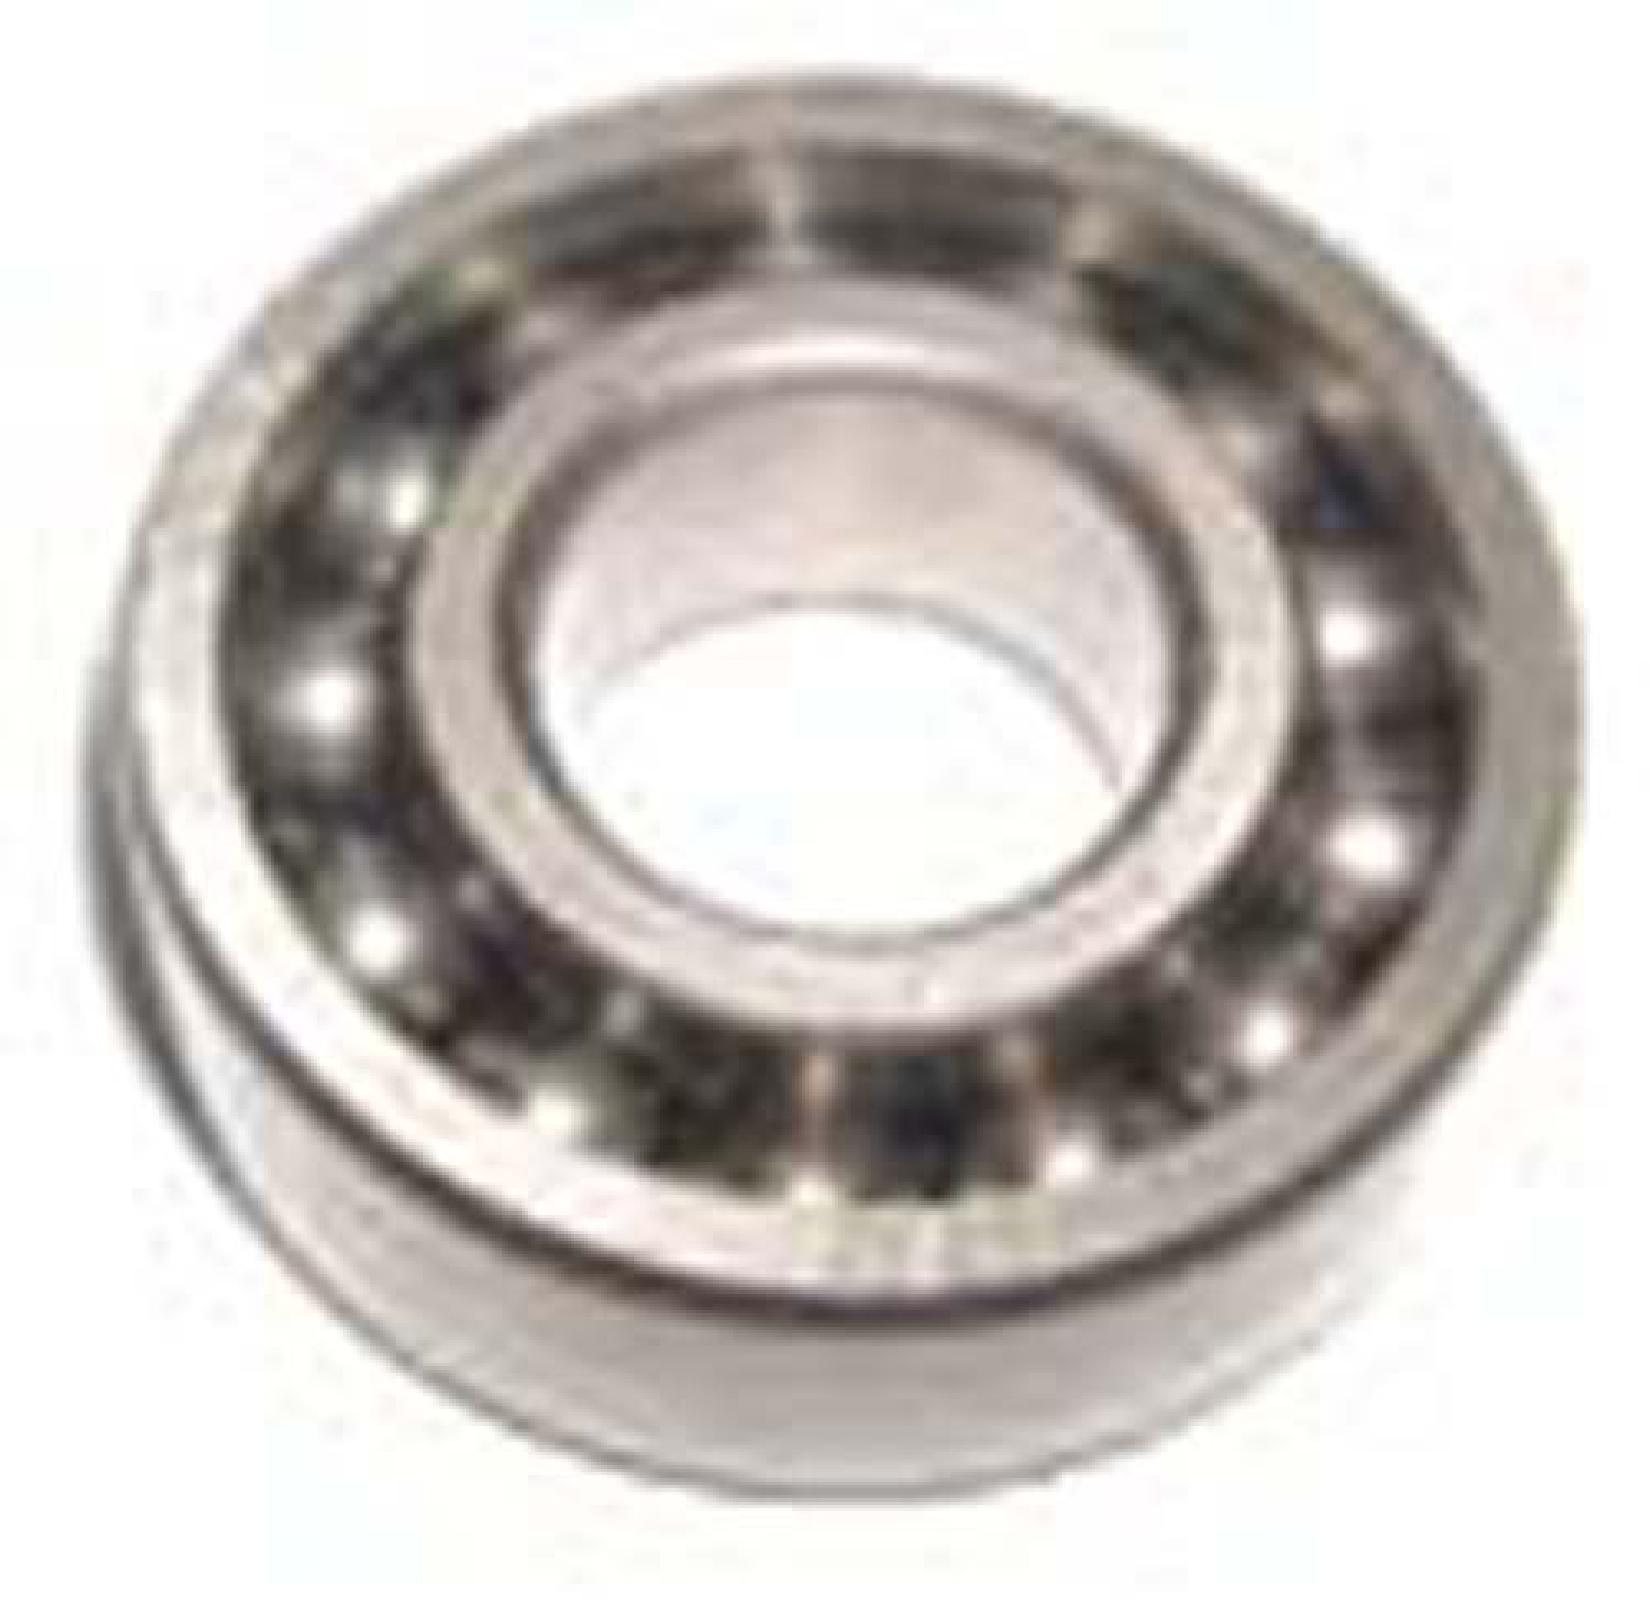 Crank Case Ball Bearing for Honda GX240 and GX270